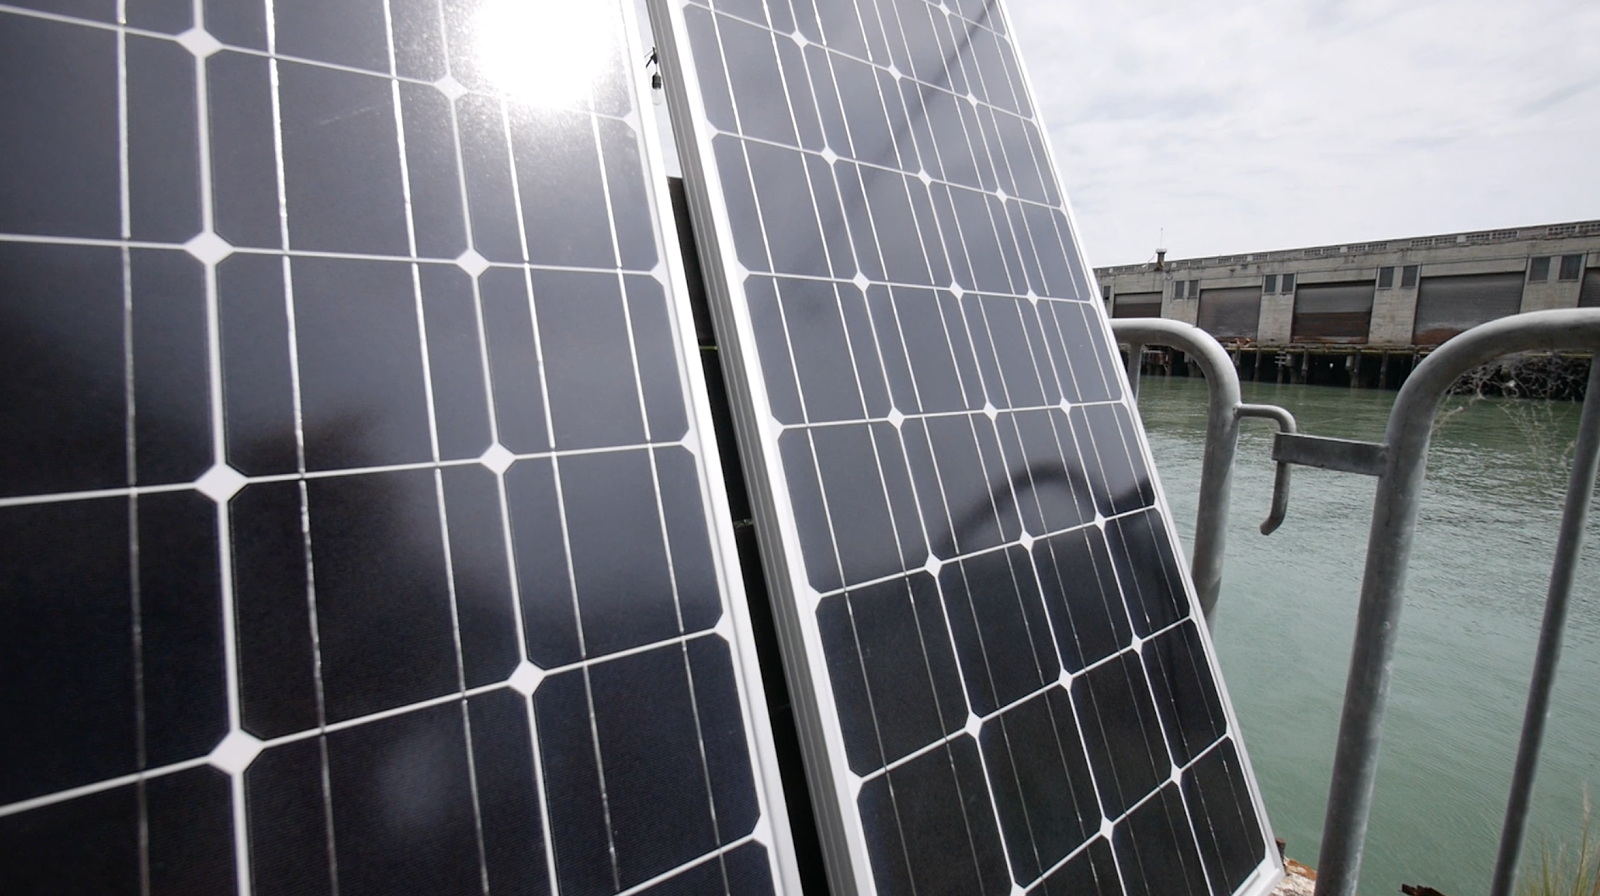 How And Why We Built An Internet Connected Solar Panel Does The Make Electricity From Sunlight Weather Is Temperamental With Clouds Fog Blocking Sun Because Of This Power Output Panels Can Shift